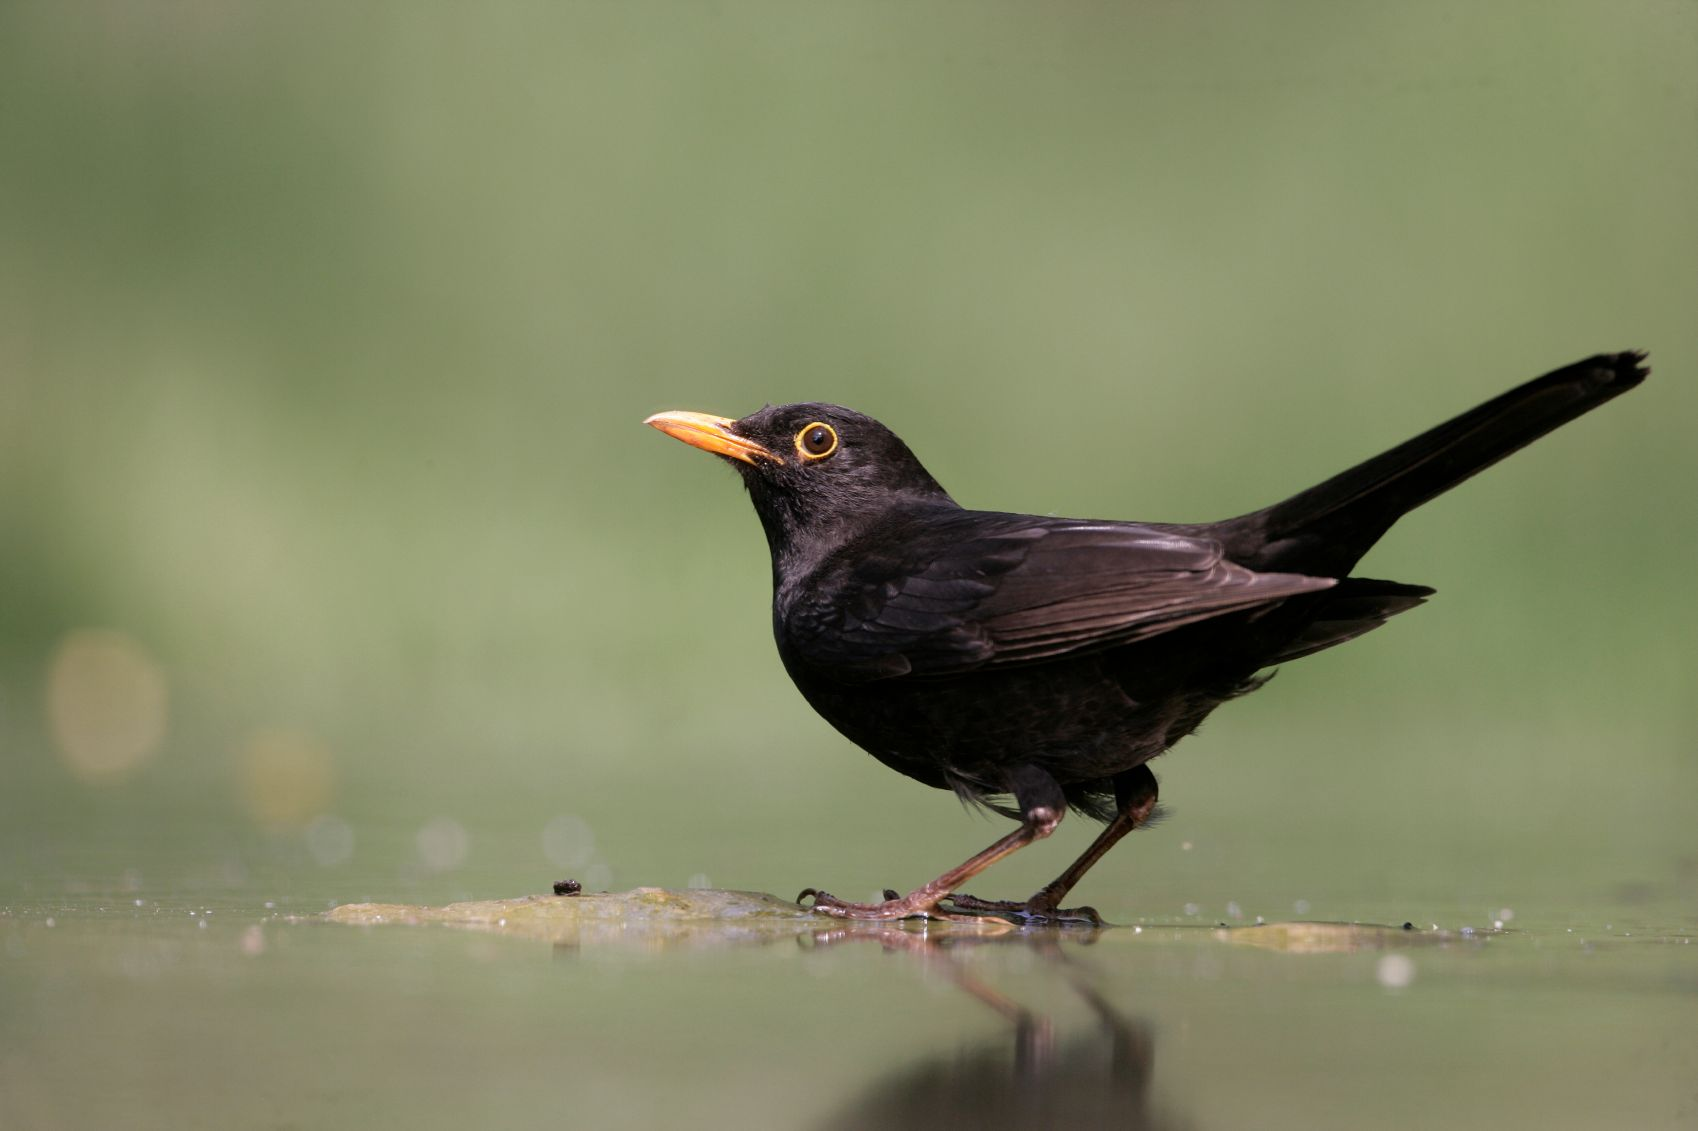 Blackbird on water